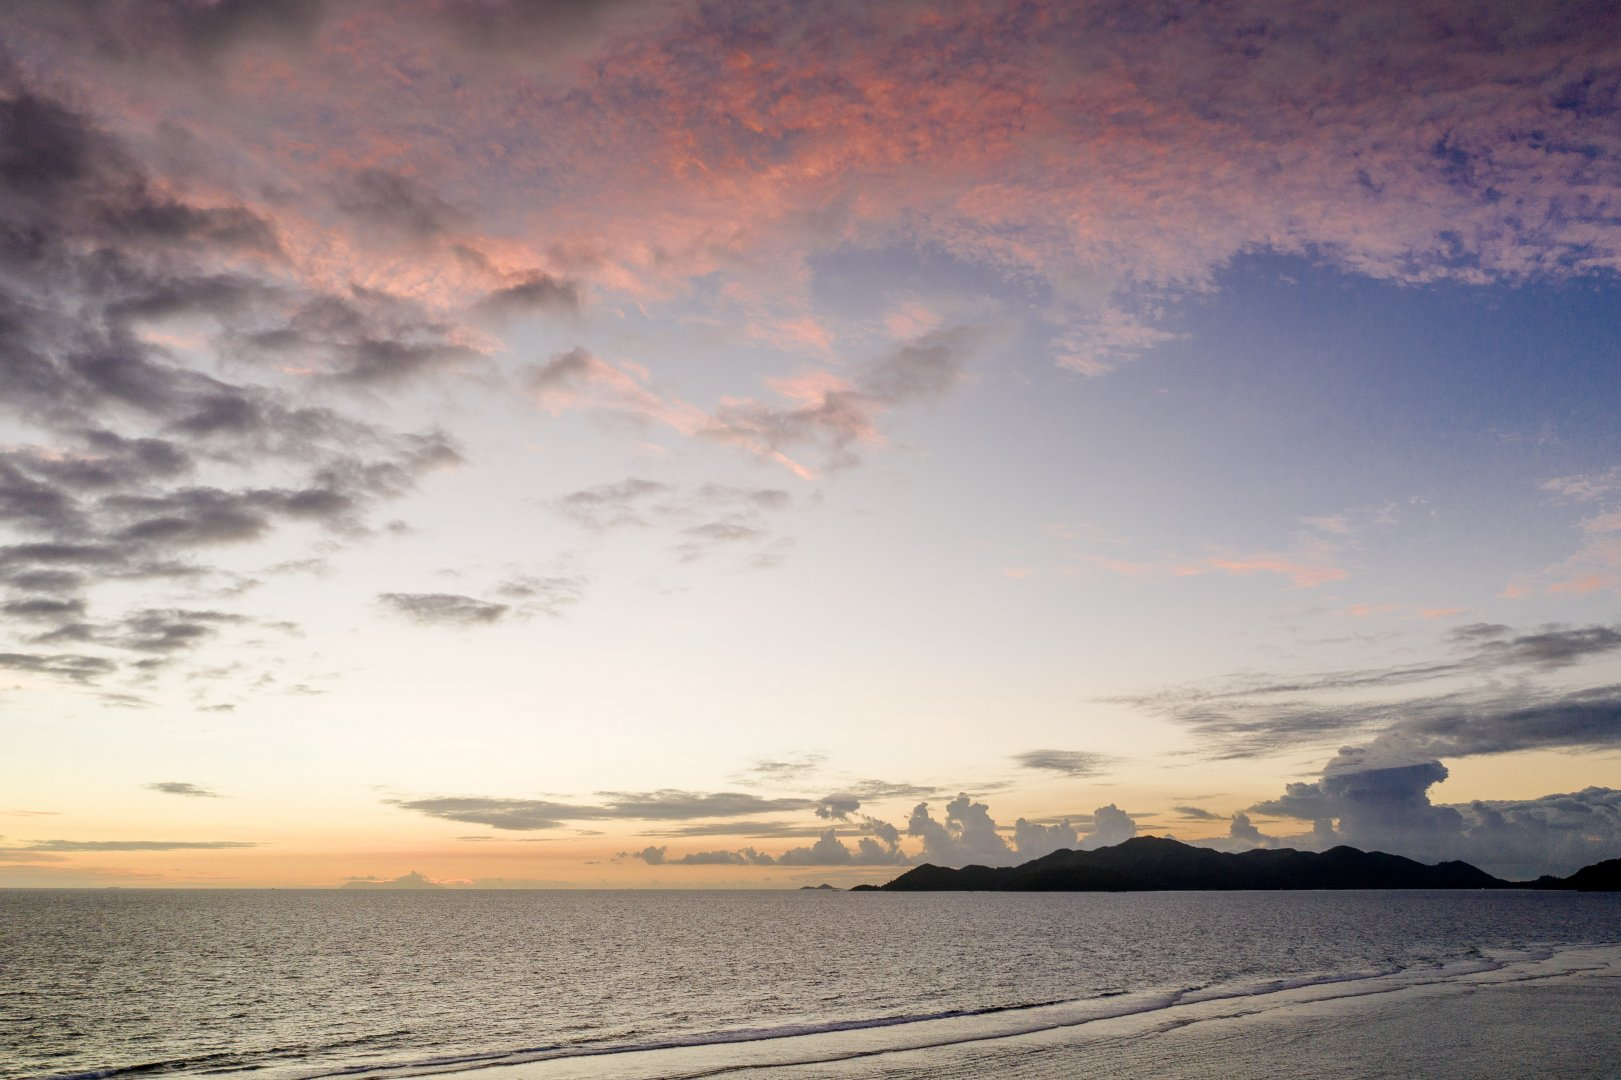 Sky Horizon Cloud Body of water Sea Afterglow Ocean Daytime Sunset Cumulus Morning Calm Evening Sunrise Atmosphere Sound Coast Water Dusk Sunlight Dawn Shore Landscape Meteorological phenomenon Beach Wind wave Coastal and oceanic landforms Vacation Photography Wave